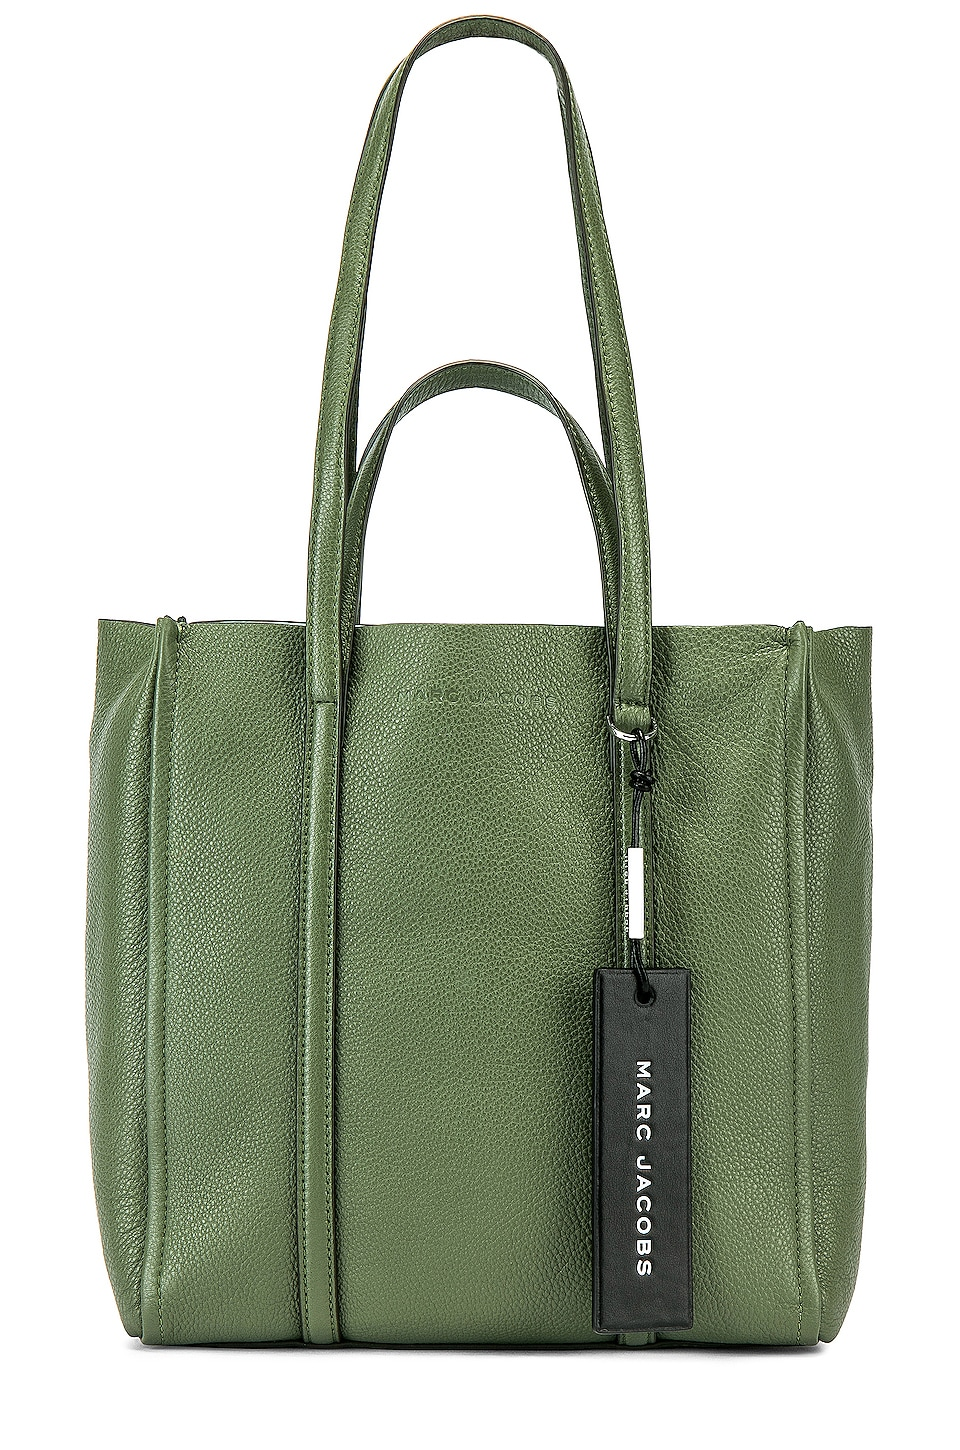 Marc Jacobs The Tag Tote 27 in Sage